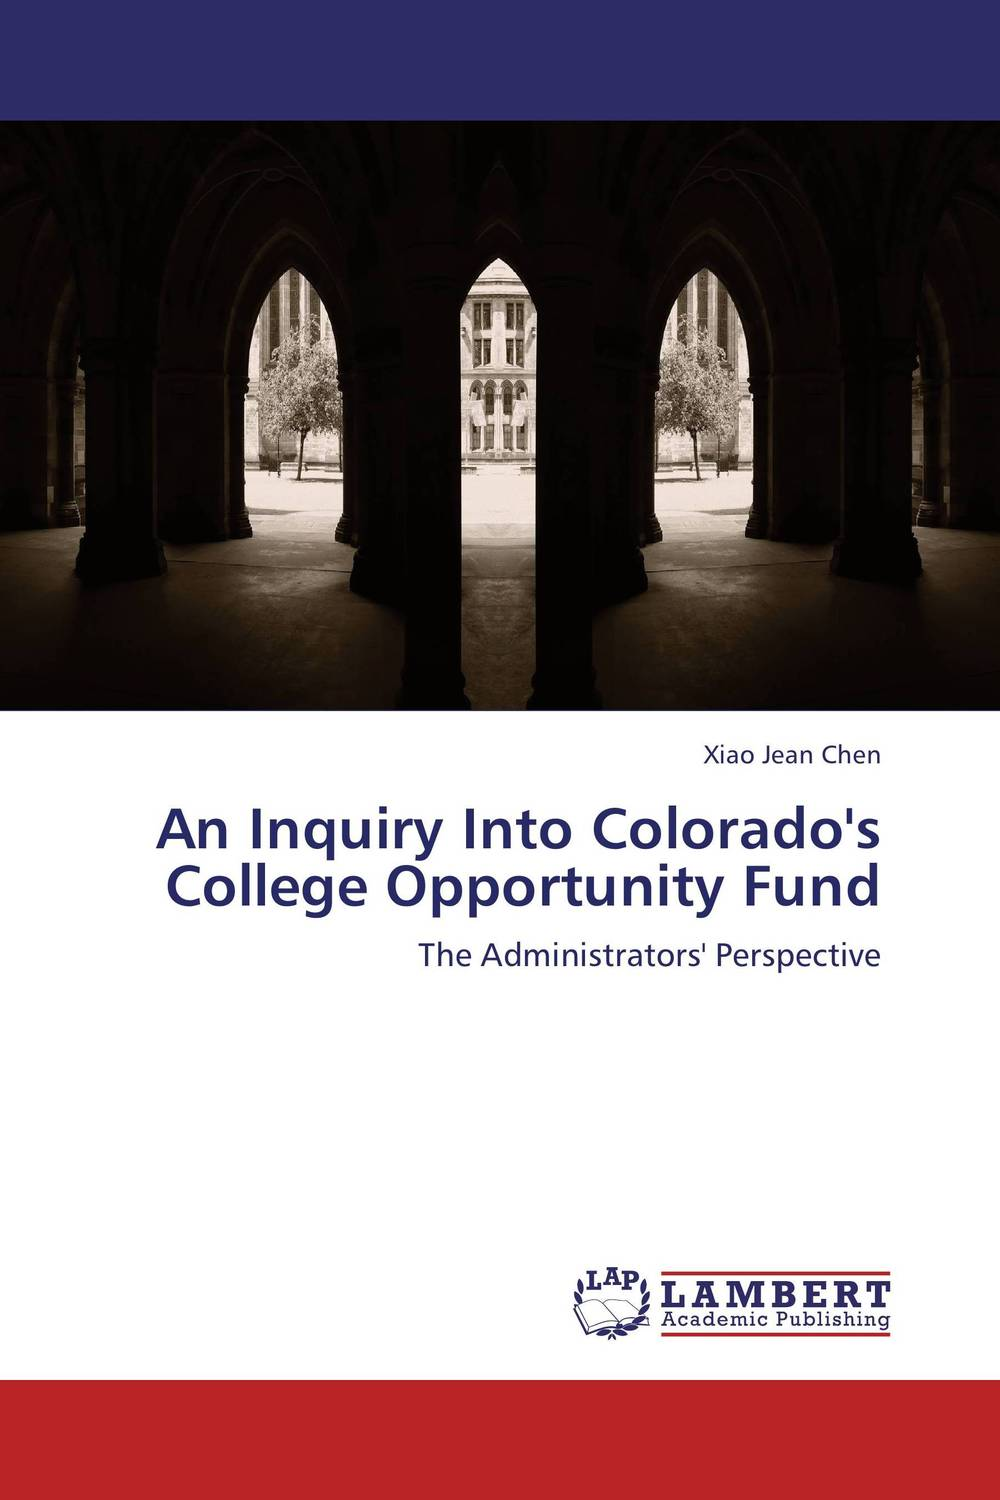 An Inquiry Into Colorado's College Opportunity Fund duncan bruce the dream cafe lessons in the art of radical innovation